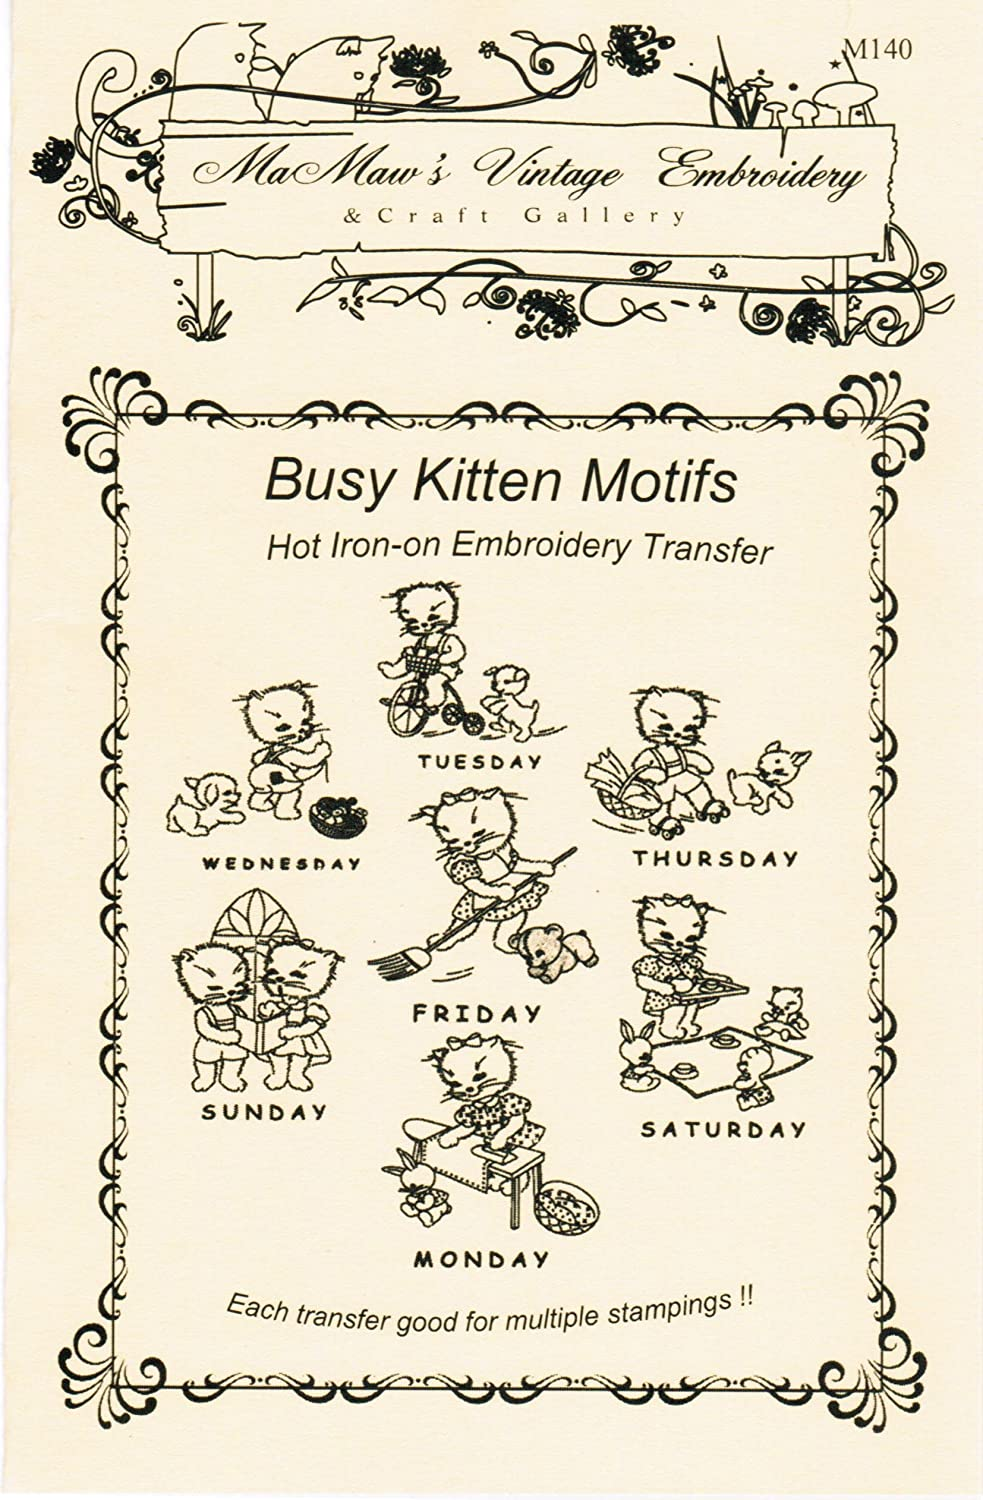 Busy Kitten Motifs for Days-of-the-Week Hot Iron Embroidery Transfers